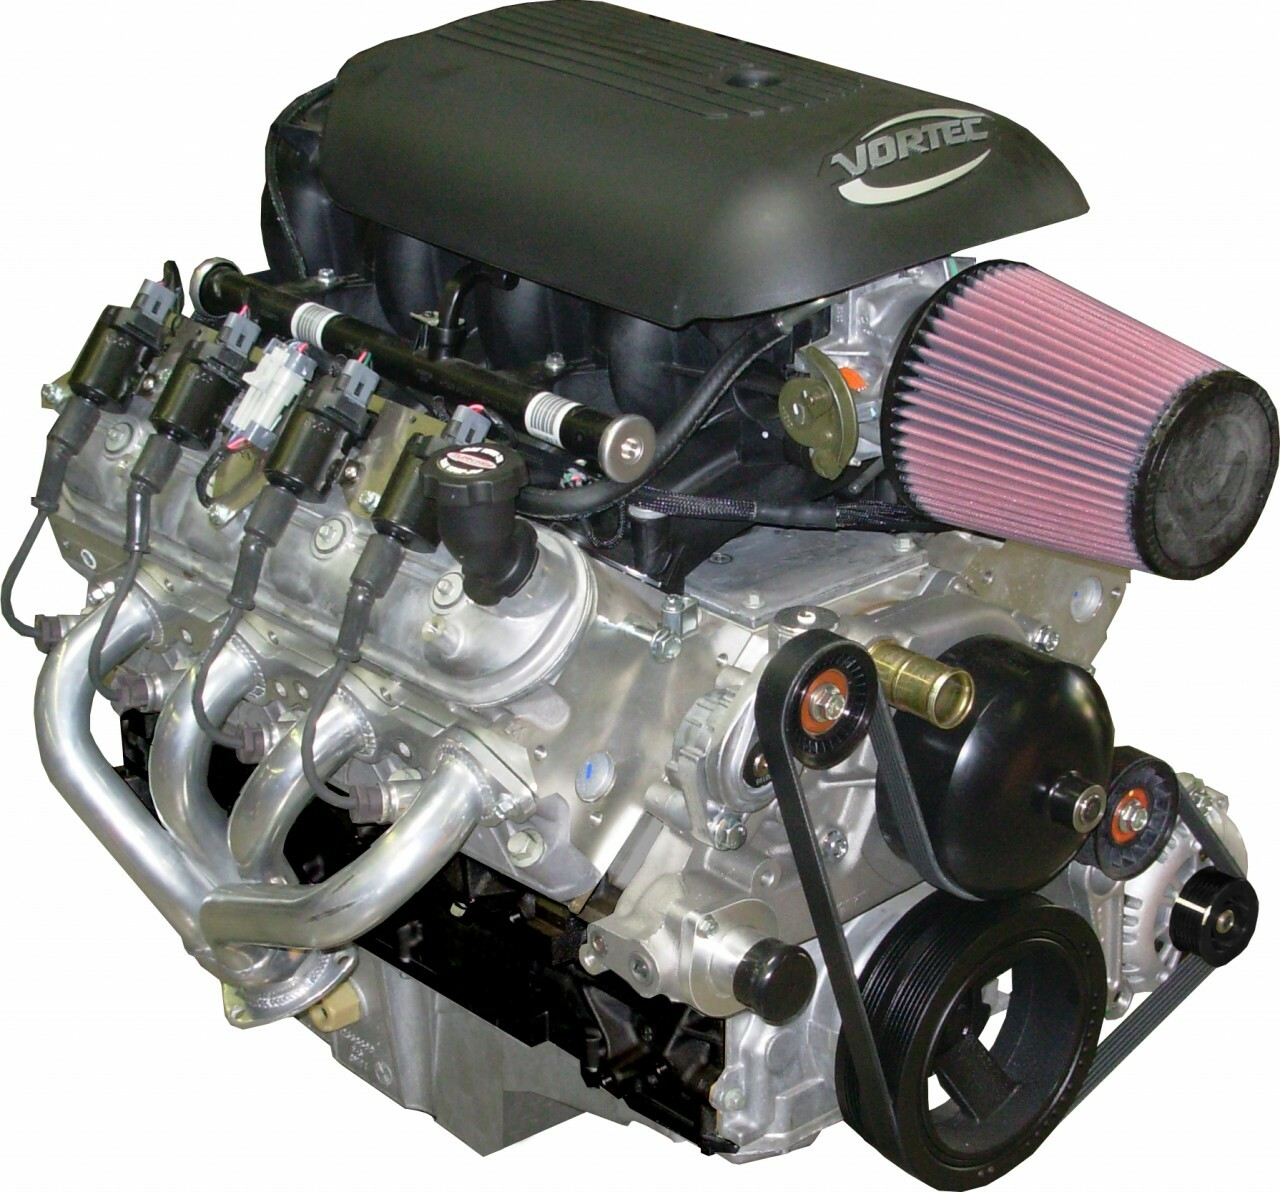 What is a ls motor